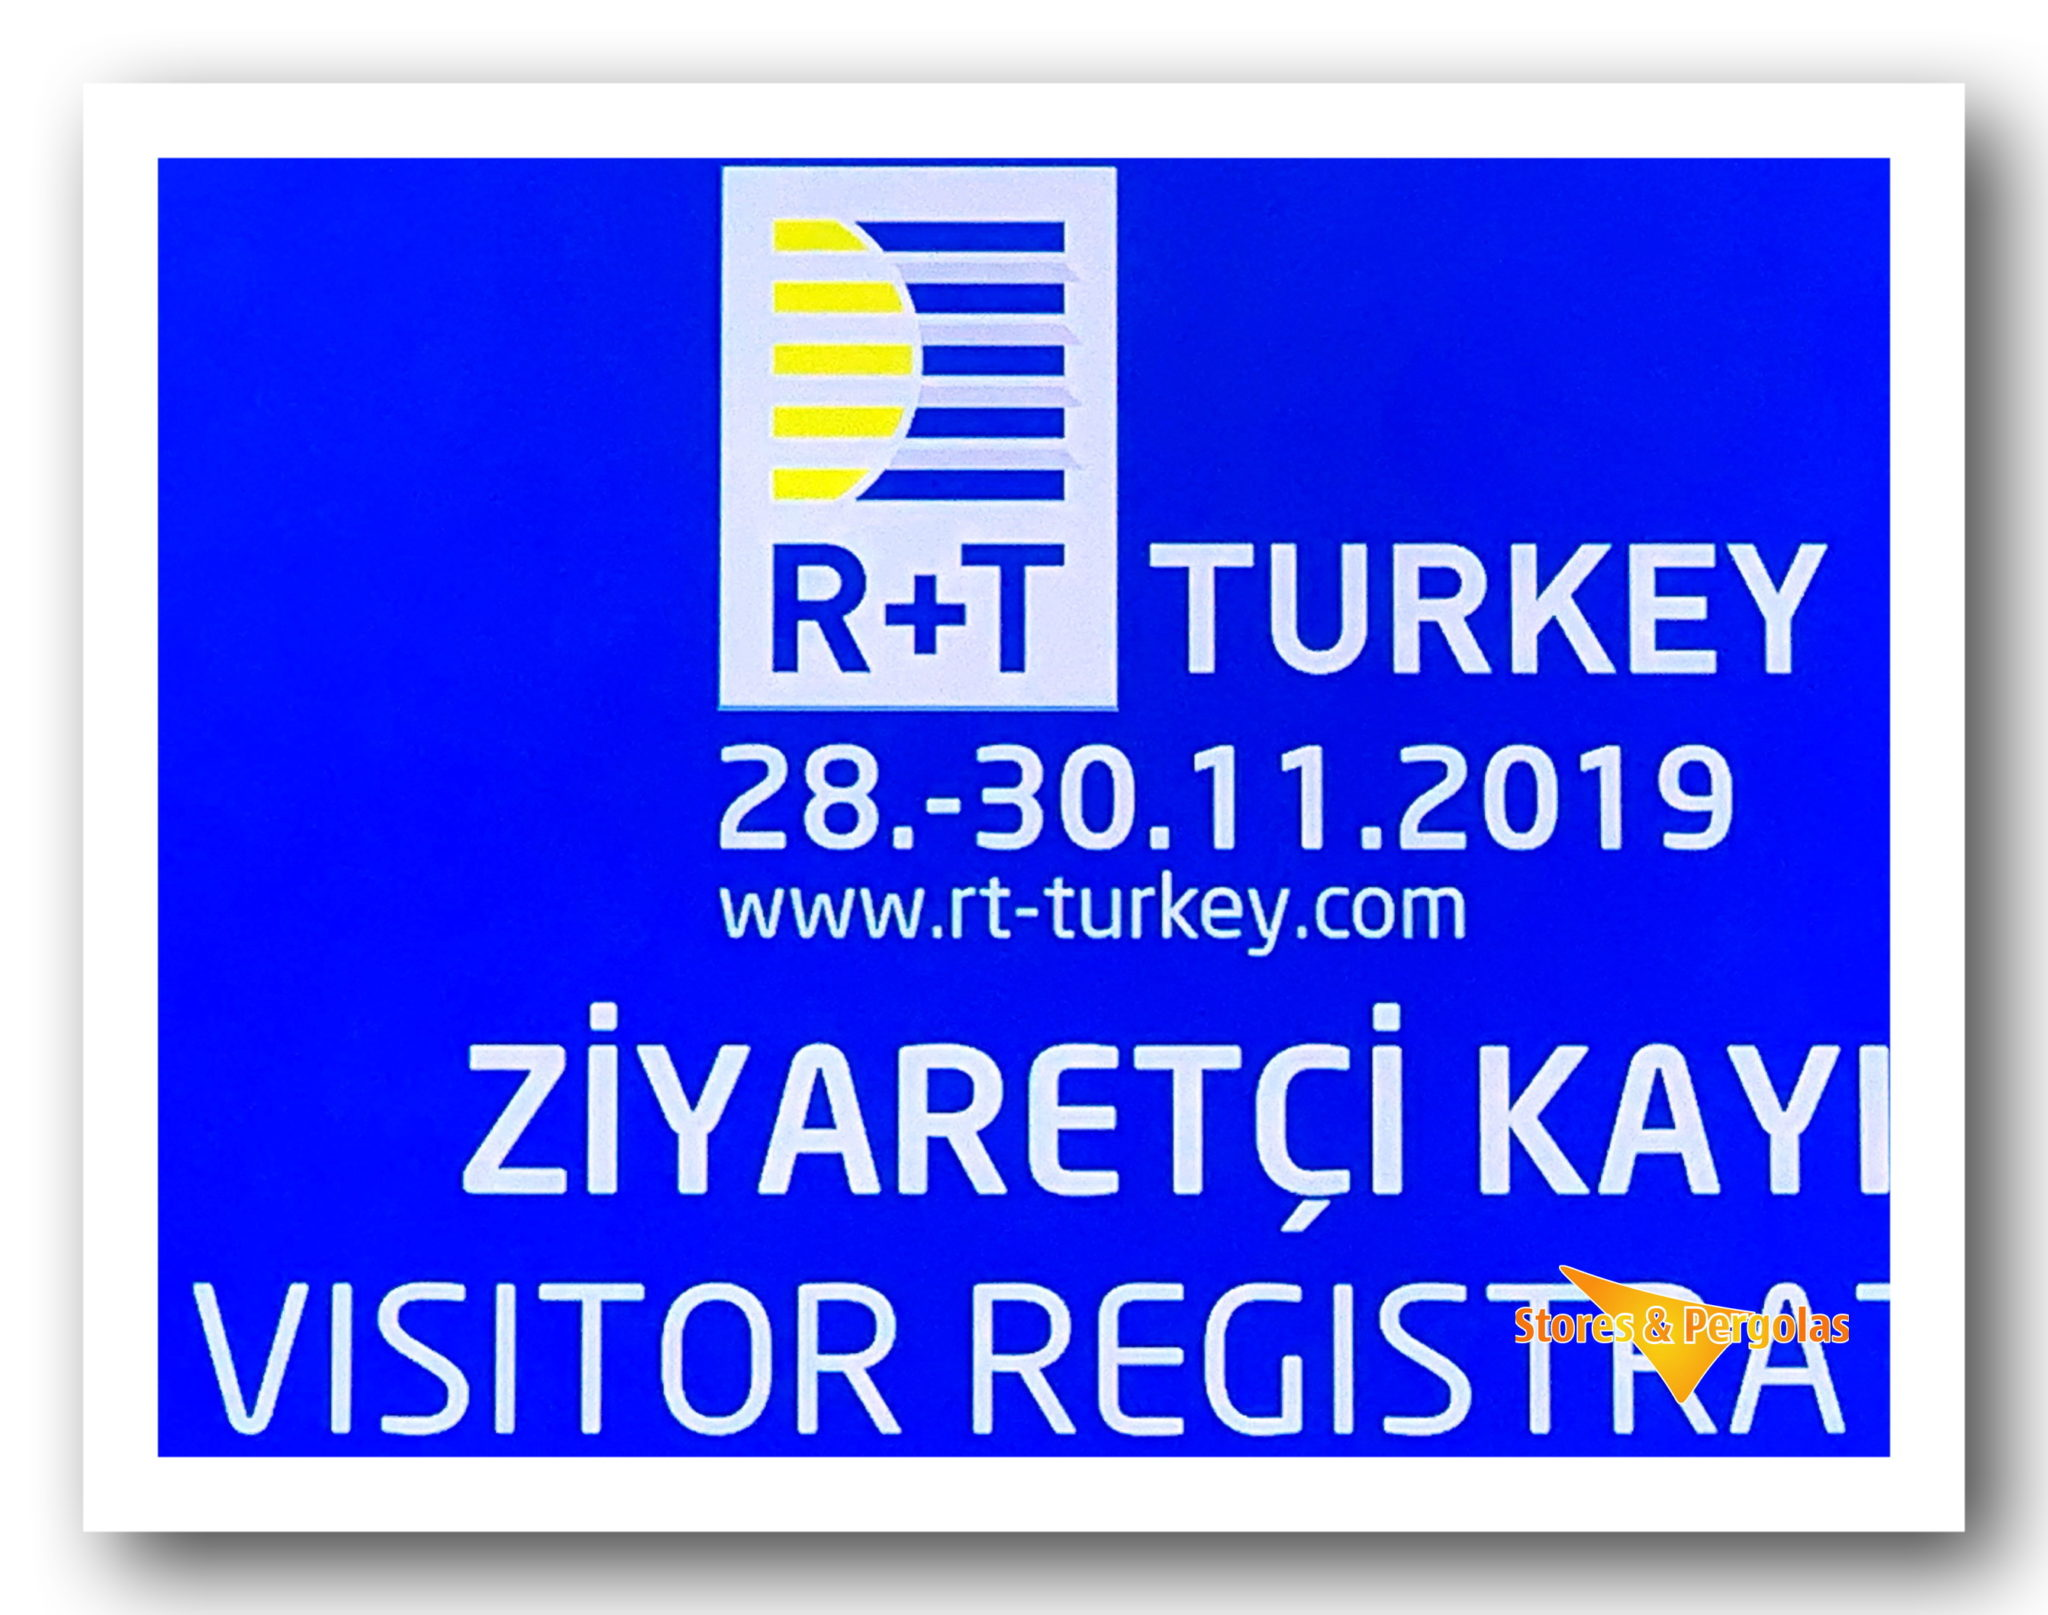 R+T-turkey-2019-registration-desk